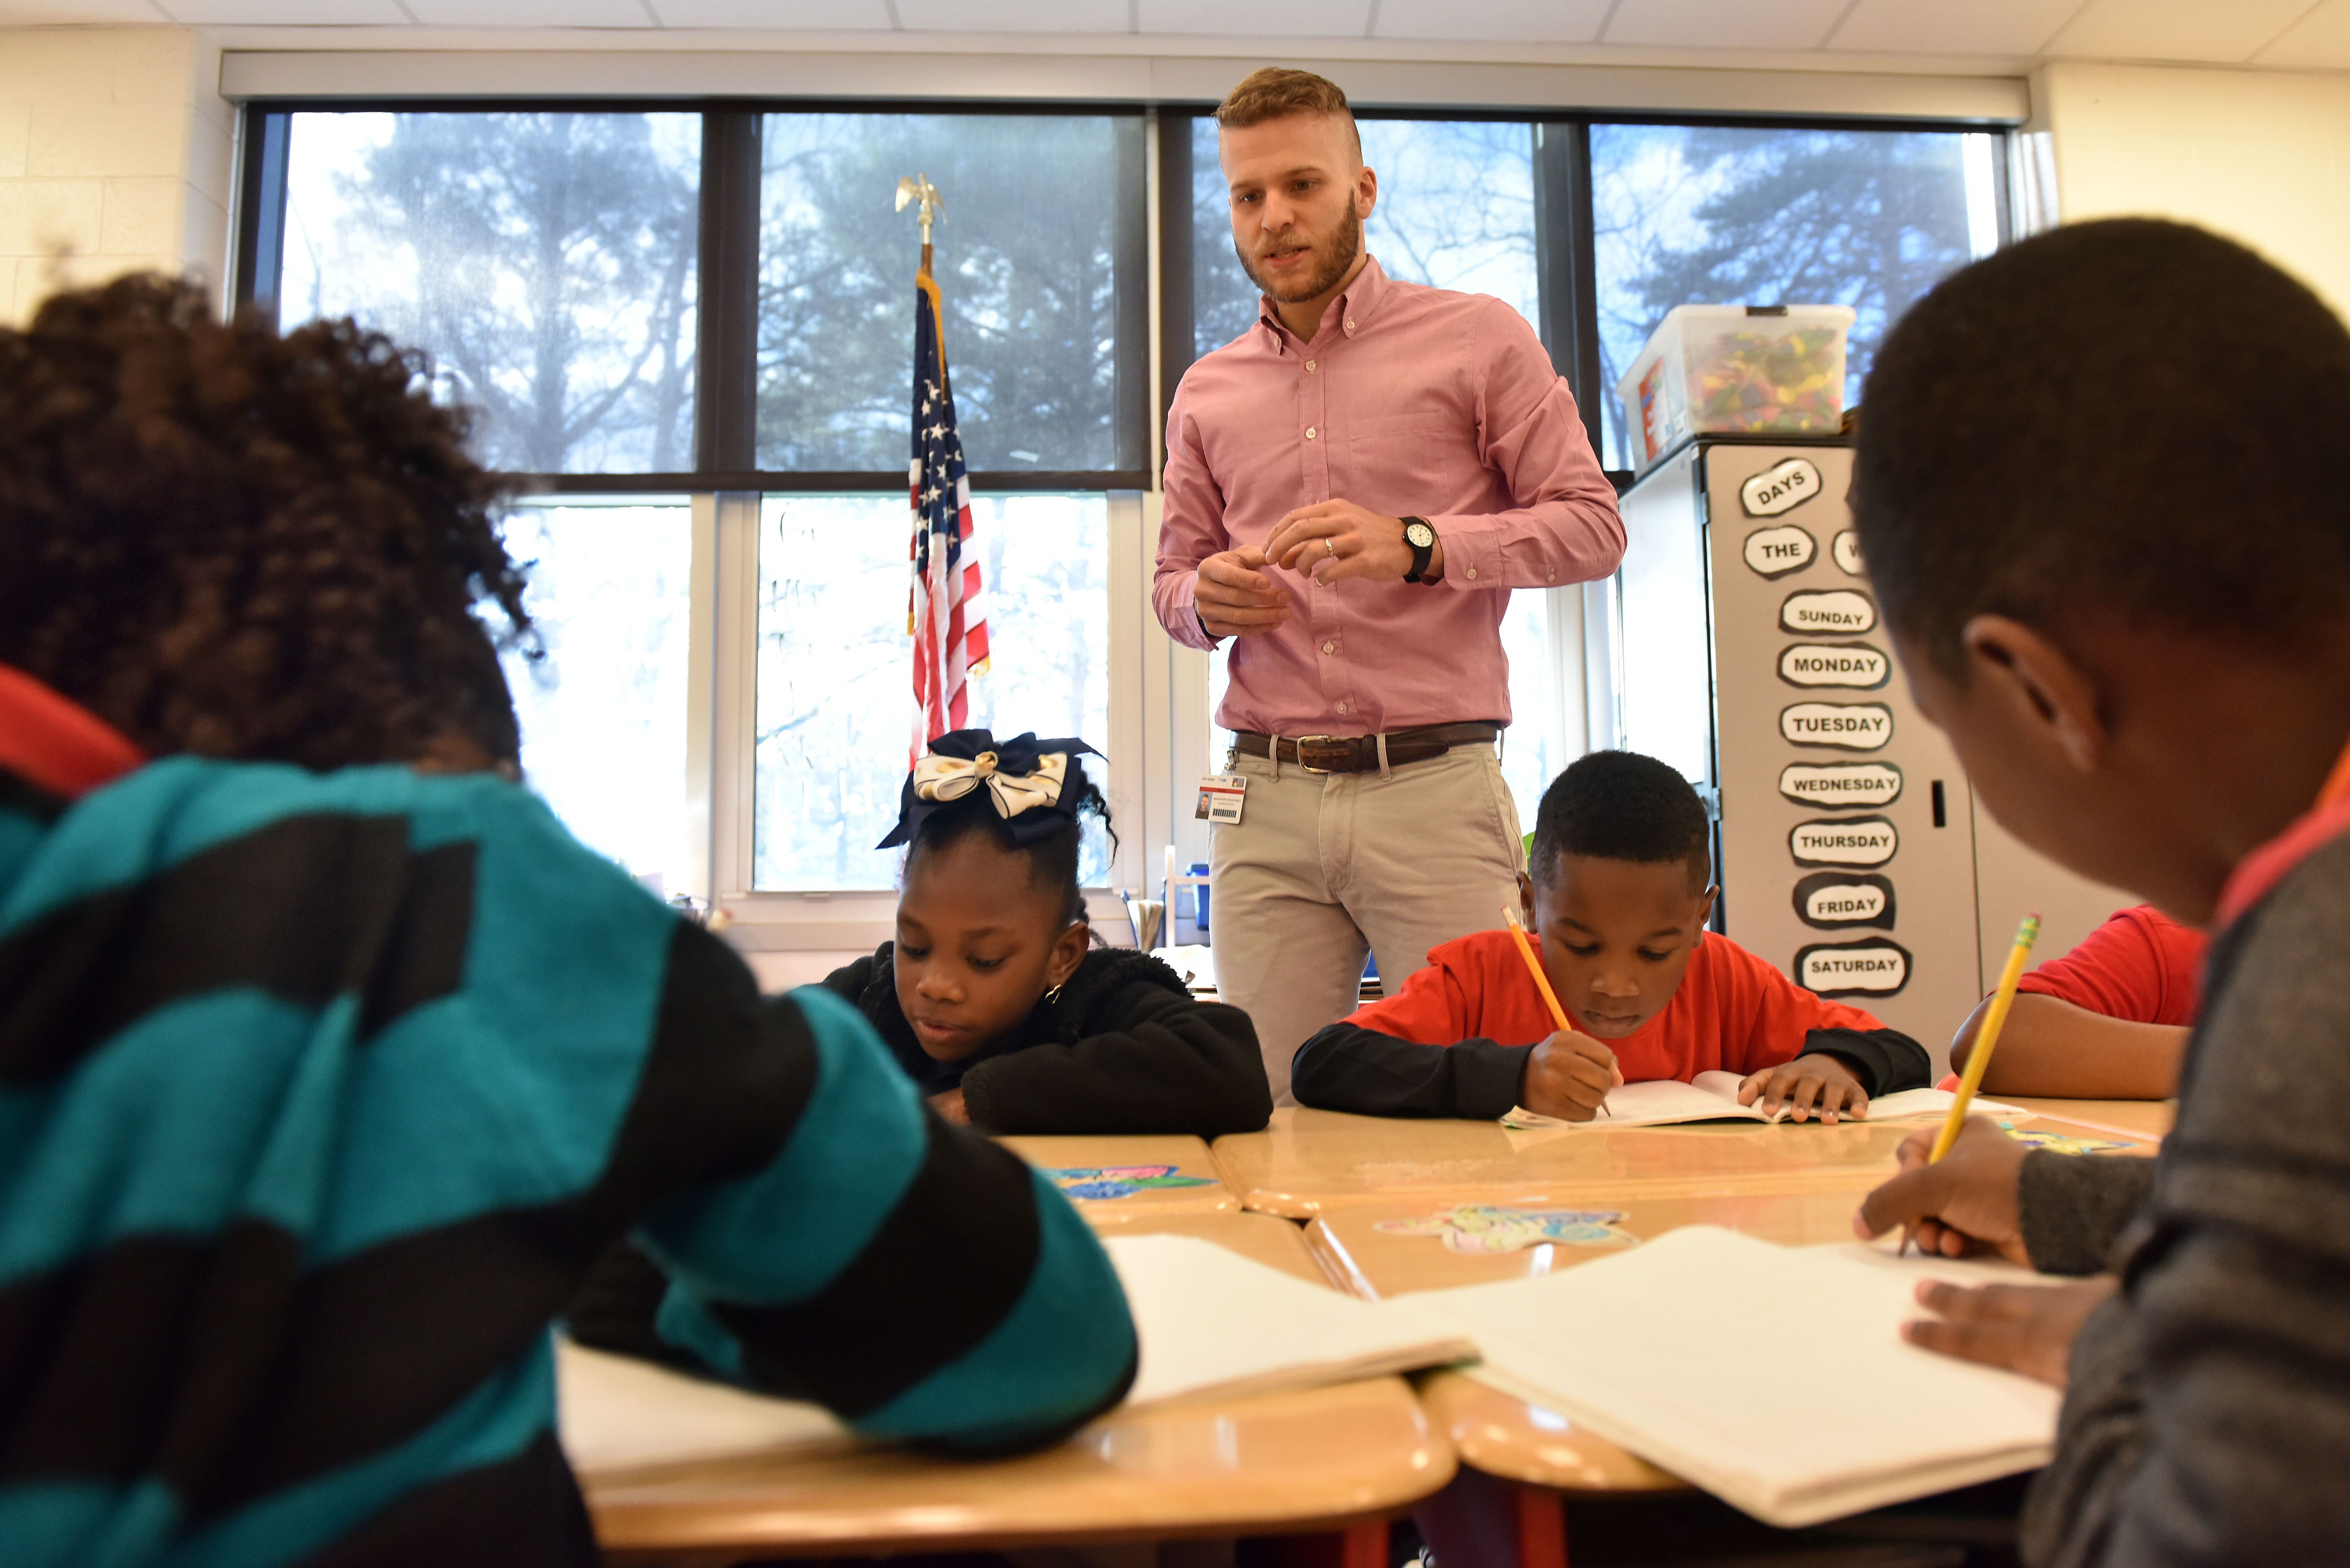 The National Education Association rates Mississippi last among states in teacher salary. The Mississippi Department of Education says teachers made an average of $44,659 in the 2016-2017 school year, including local salary add-ons.